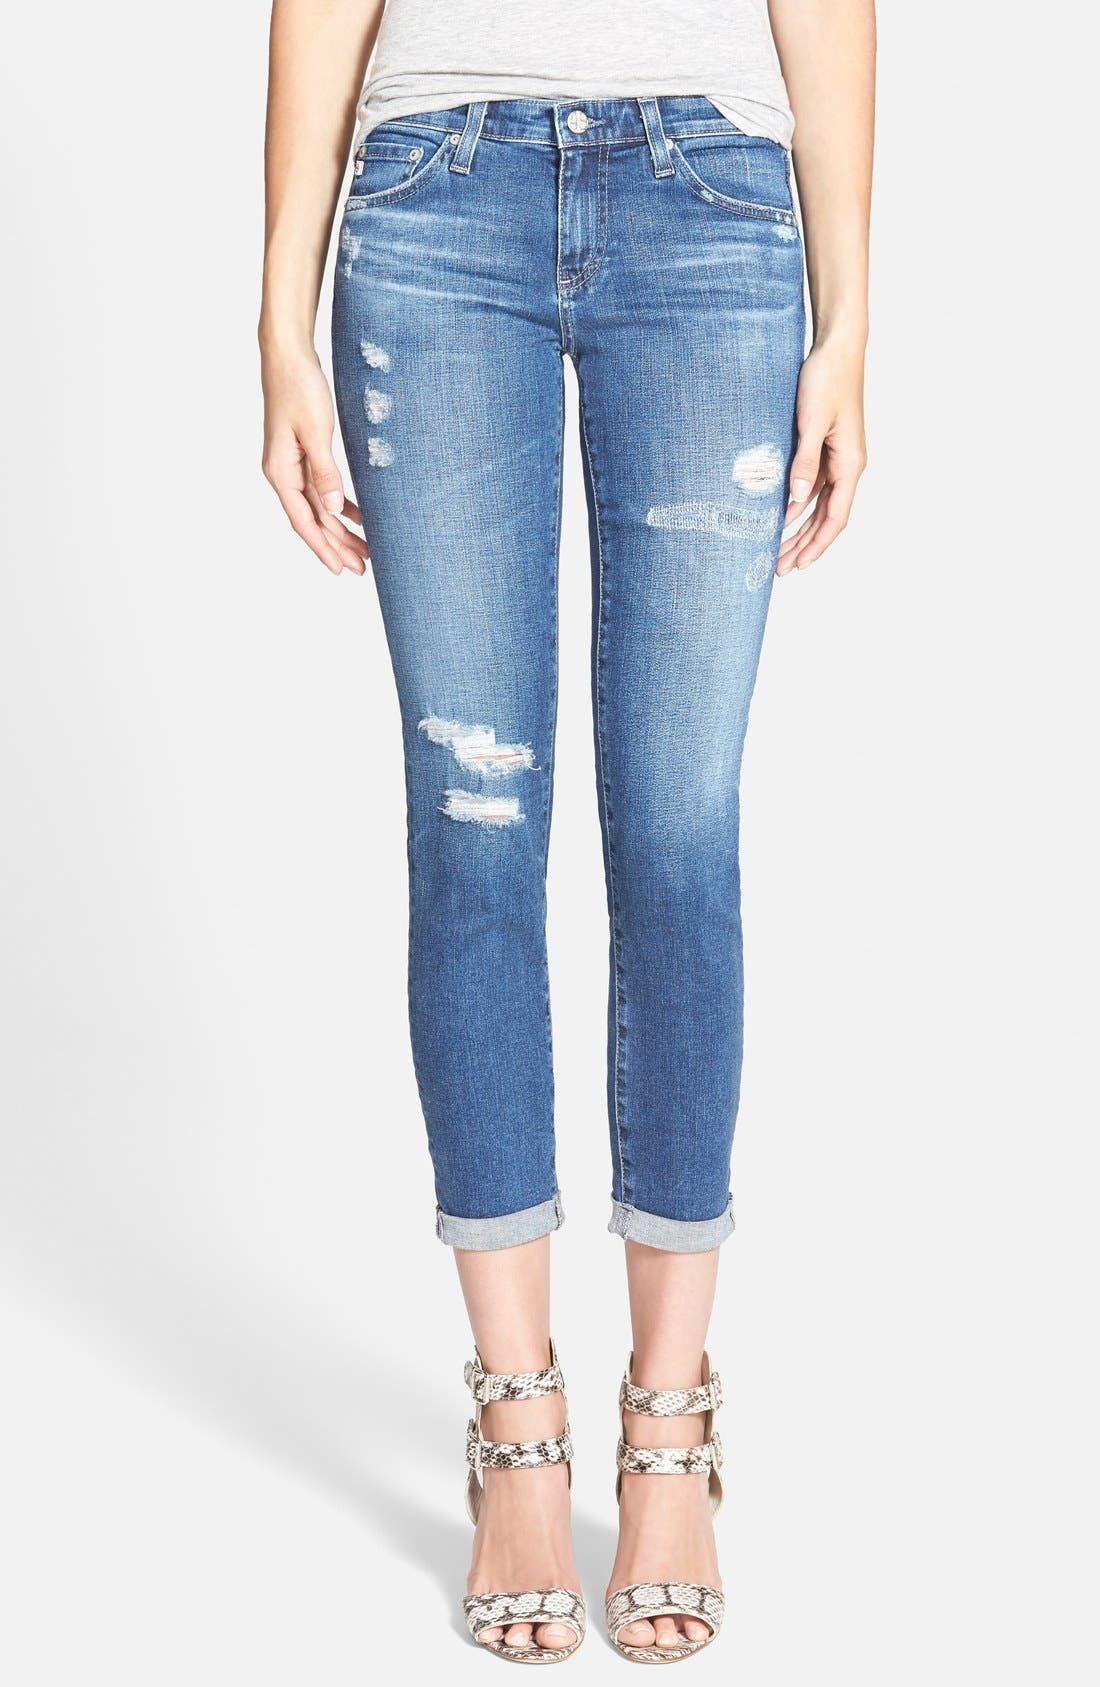 'The Stilt' Roll Cuff Skinny Jeans,                             Main thumbnail 1, color,                             400